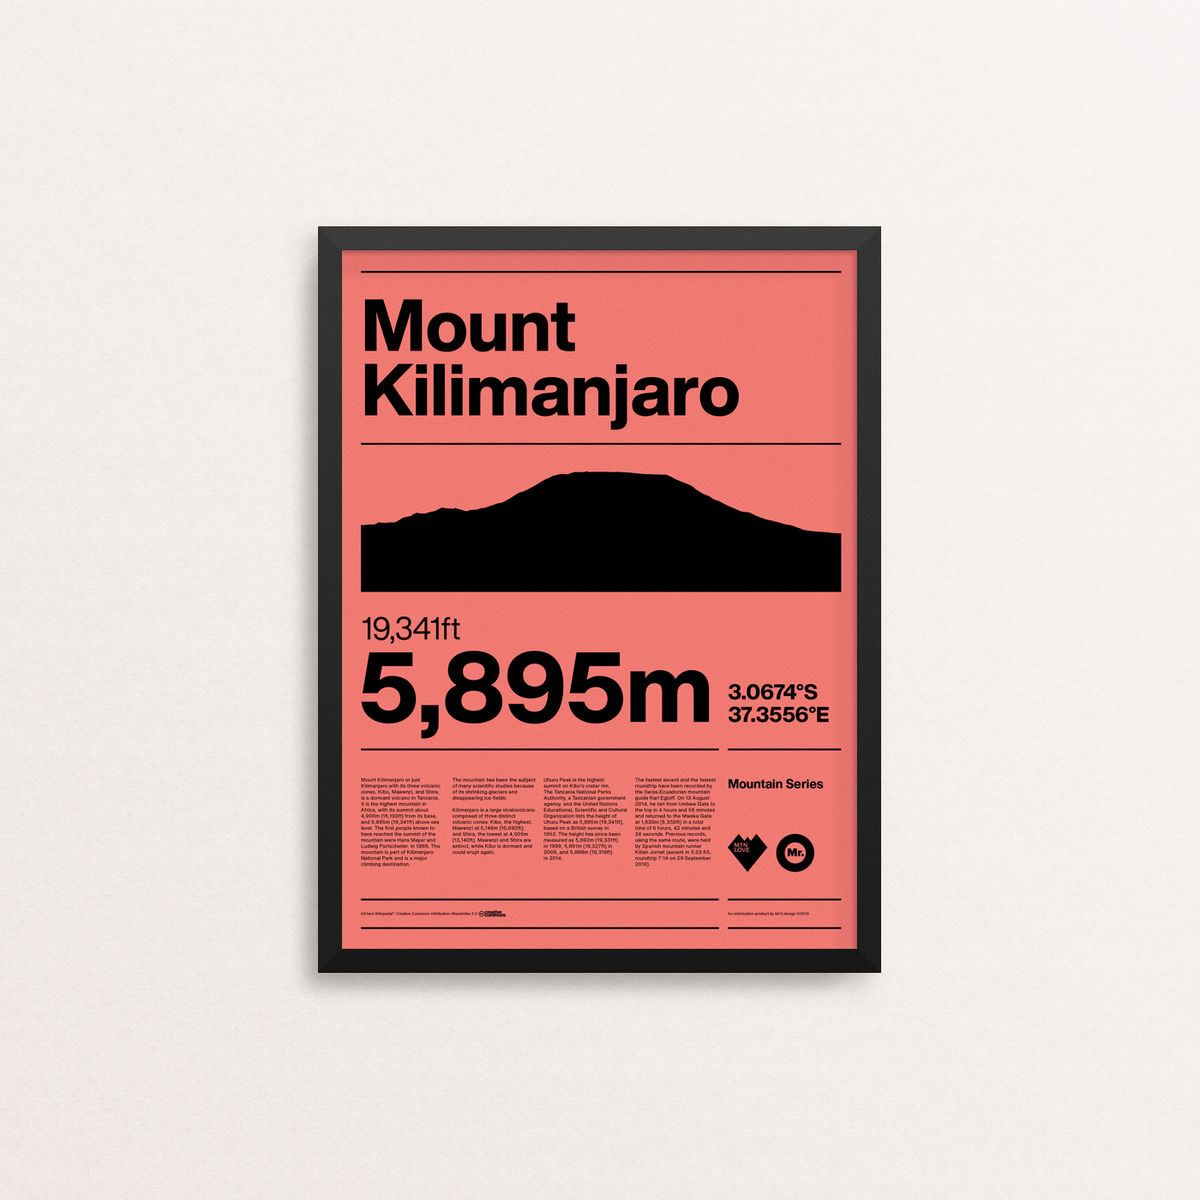 MTN Love - Mount Kilimanjaro - product image